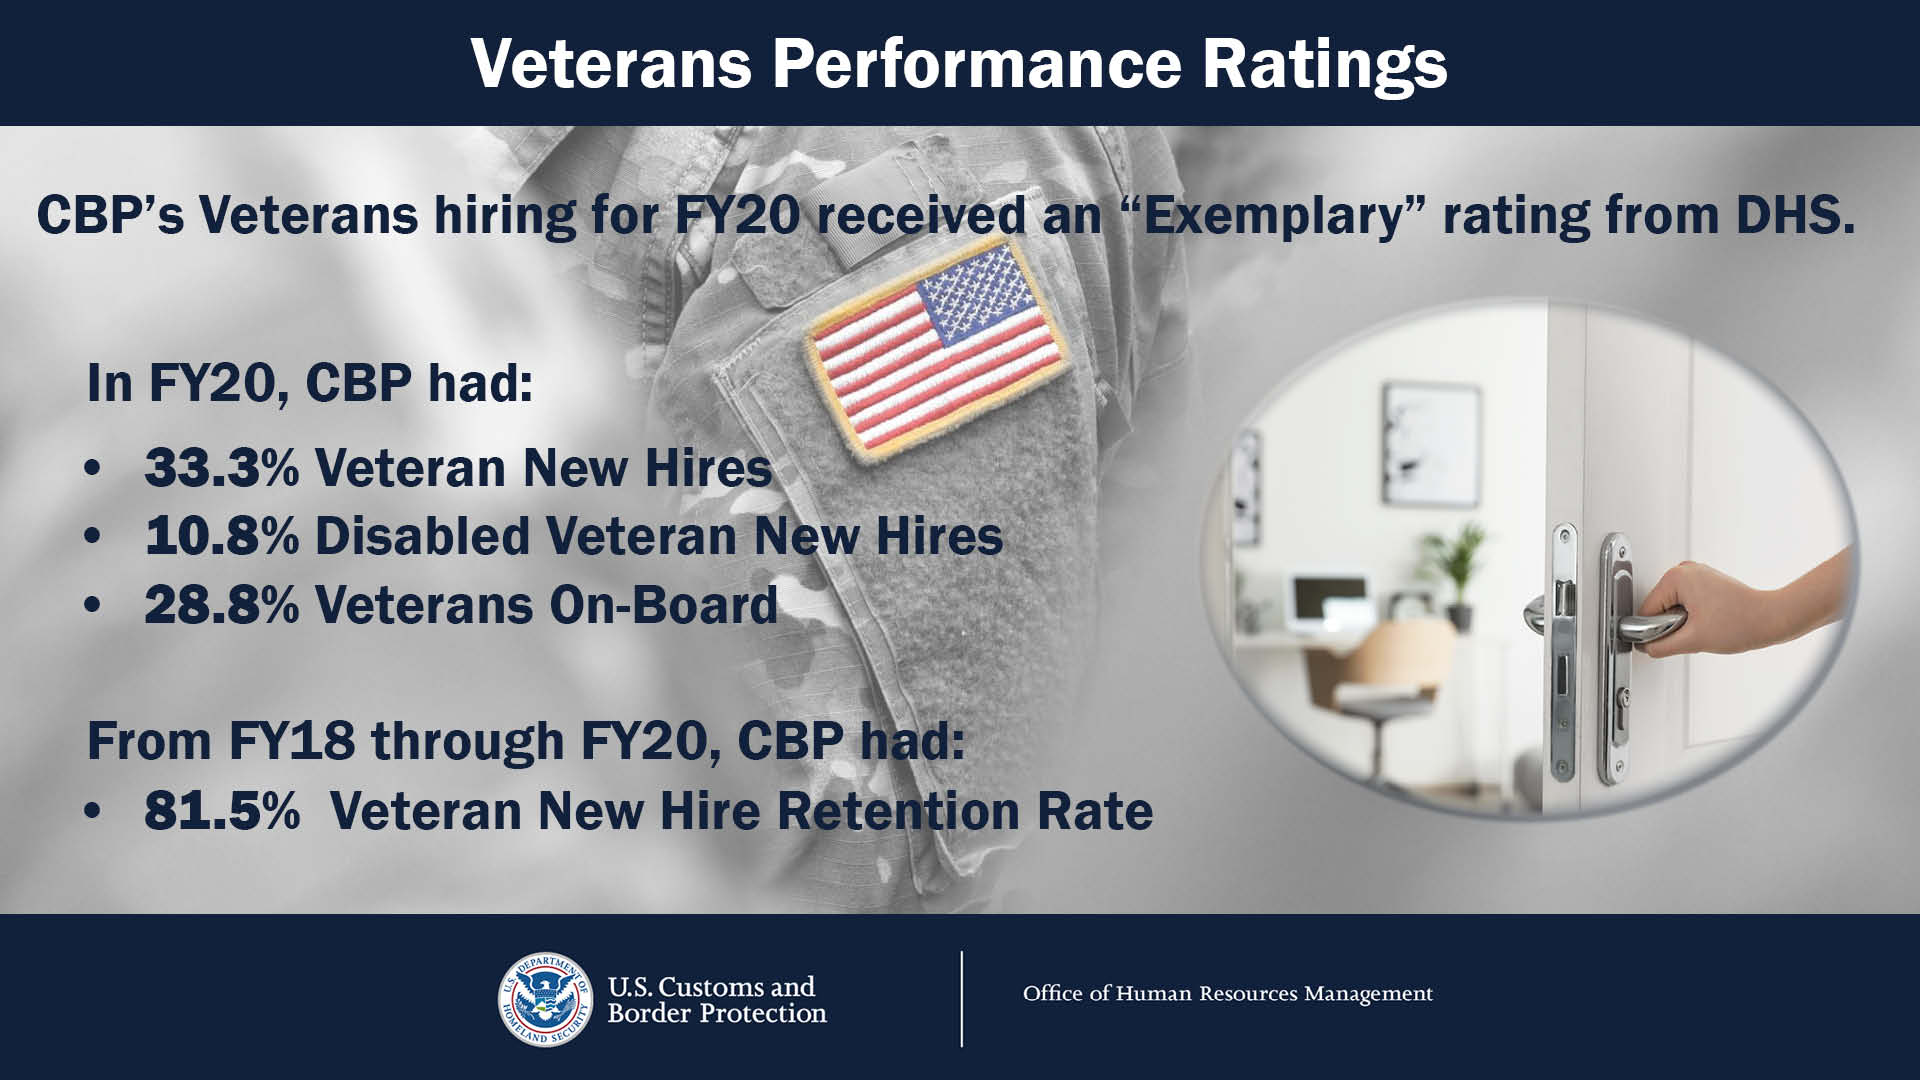 "CBP's Veterans hiring for FY20 received an ""Exemplary"" rating from DHS. In FY 20, CBP had: 33.3% Veteran New Hires, 10.8% Disabled Veteran New Hires, 28.8% Veterans On-Board and From FY18 through FY20, CBP had 81.5% Veteran New Hire Retention Rate"